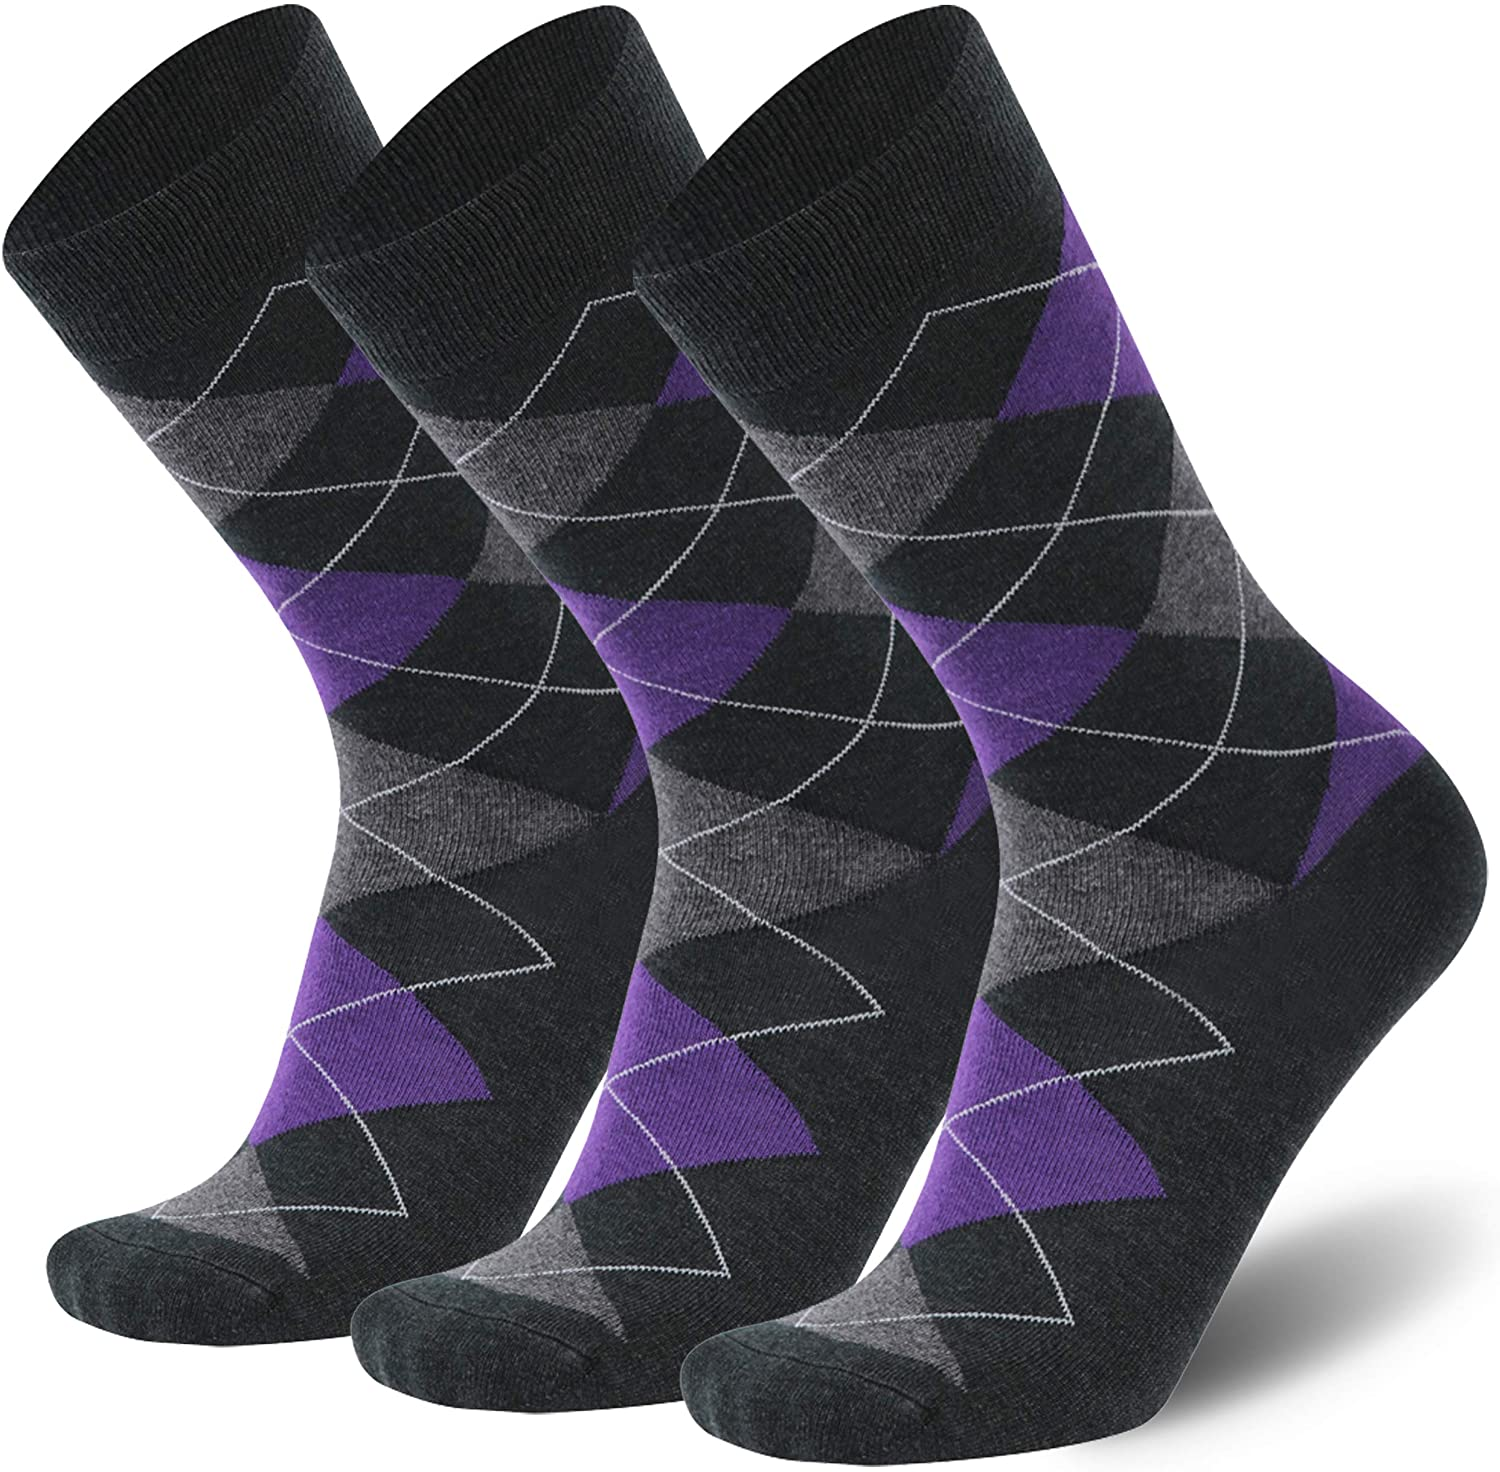 Mens Merino Wool Dress Socks,Calbom Lightweight Solid & Argyle Pattern Casual Crew Socks 3/5/6 PACK